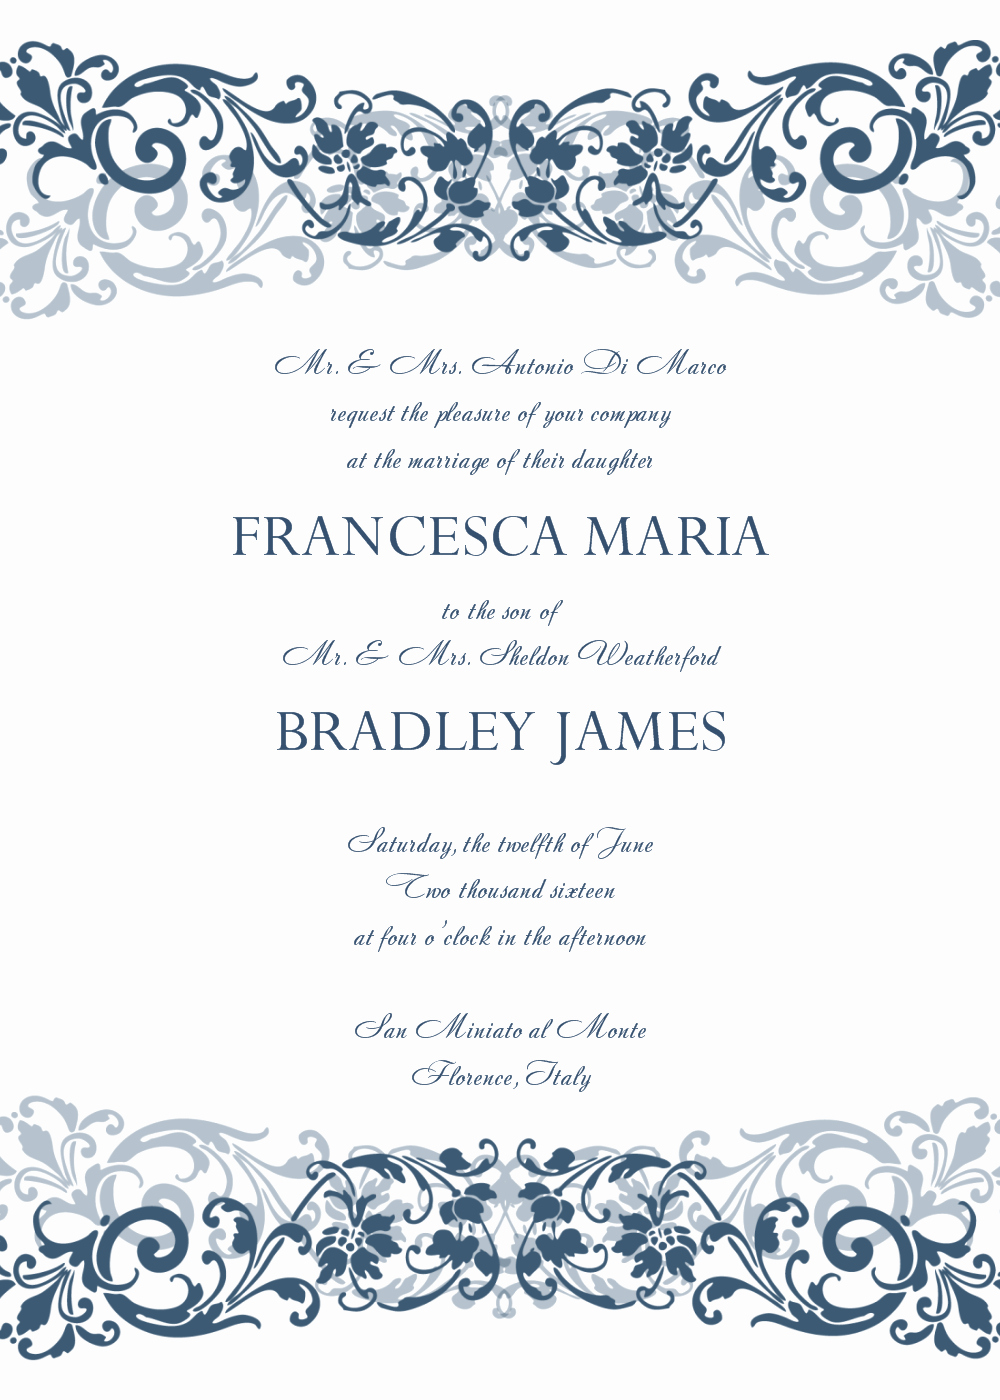 Free Invitation Template Printable Fresh 8 Free Wedding Invitation Templates Excel Pdf formats